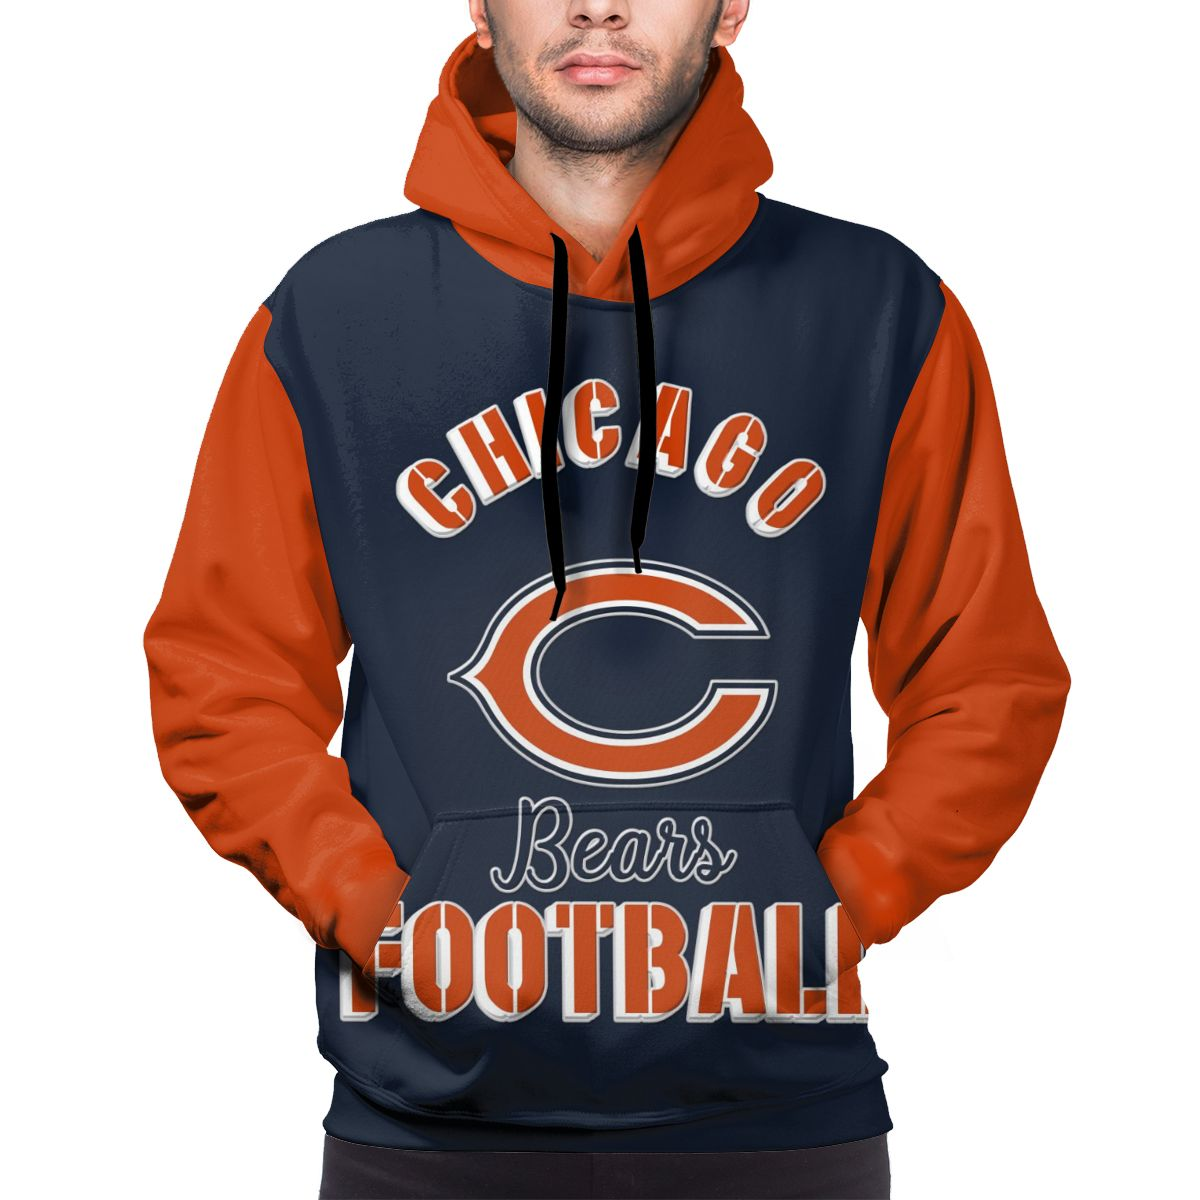 Bears Football Team Customize Hoodies For Men Pullover Sweatshirt